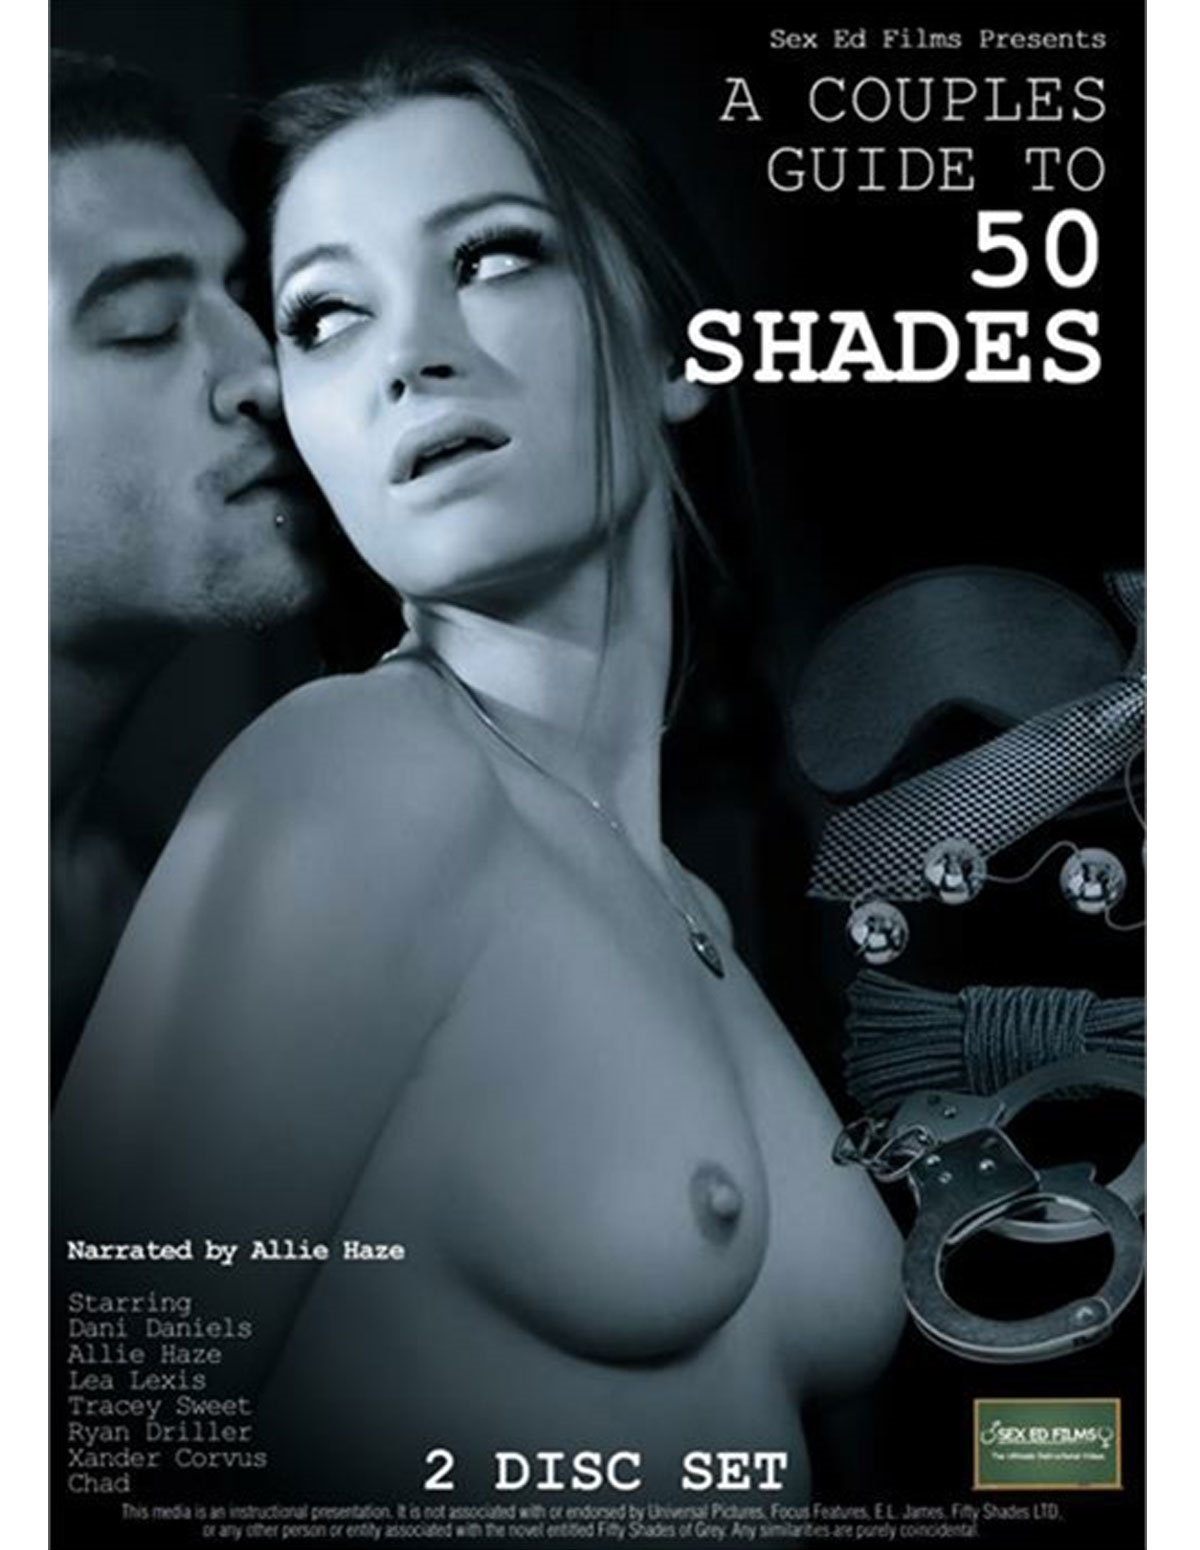 A Couples Guide To 50 Shades Dvd - Pt1